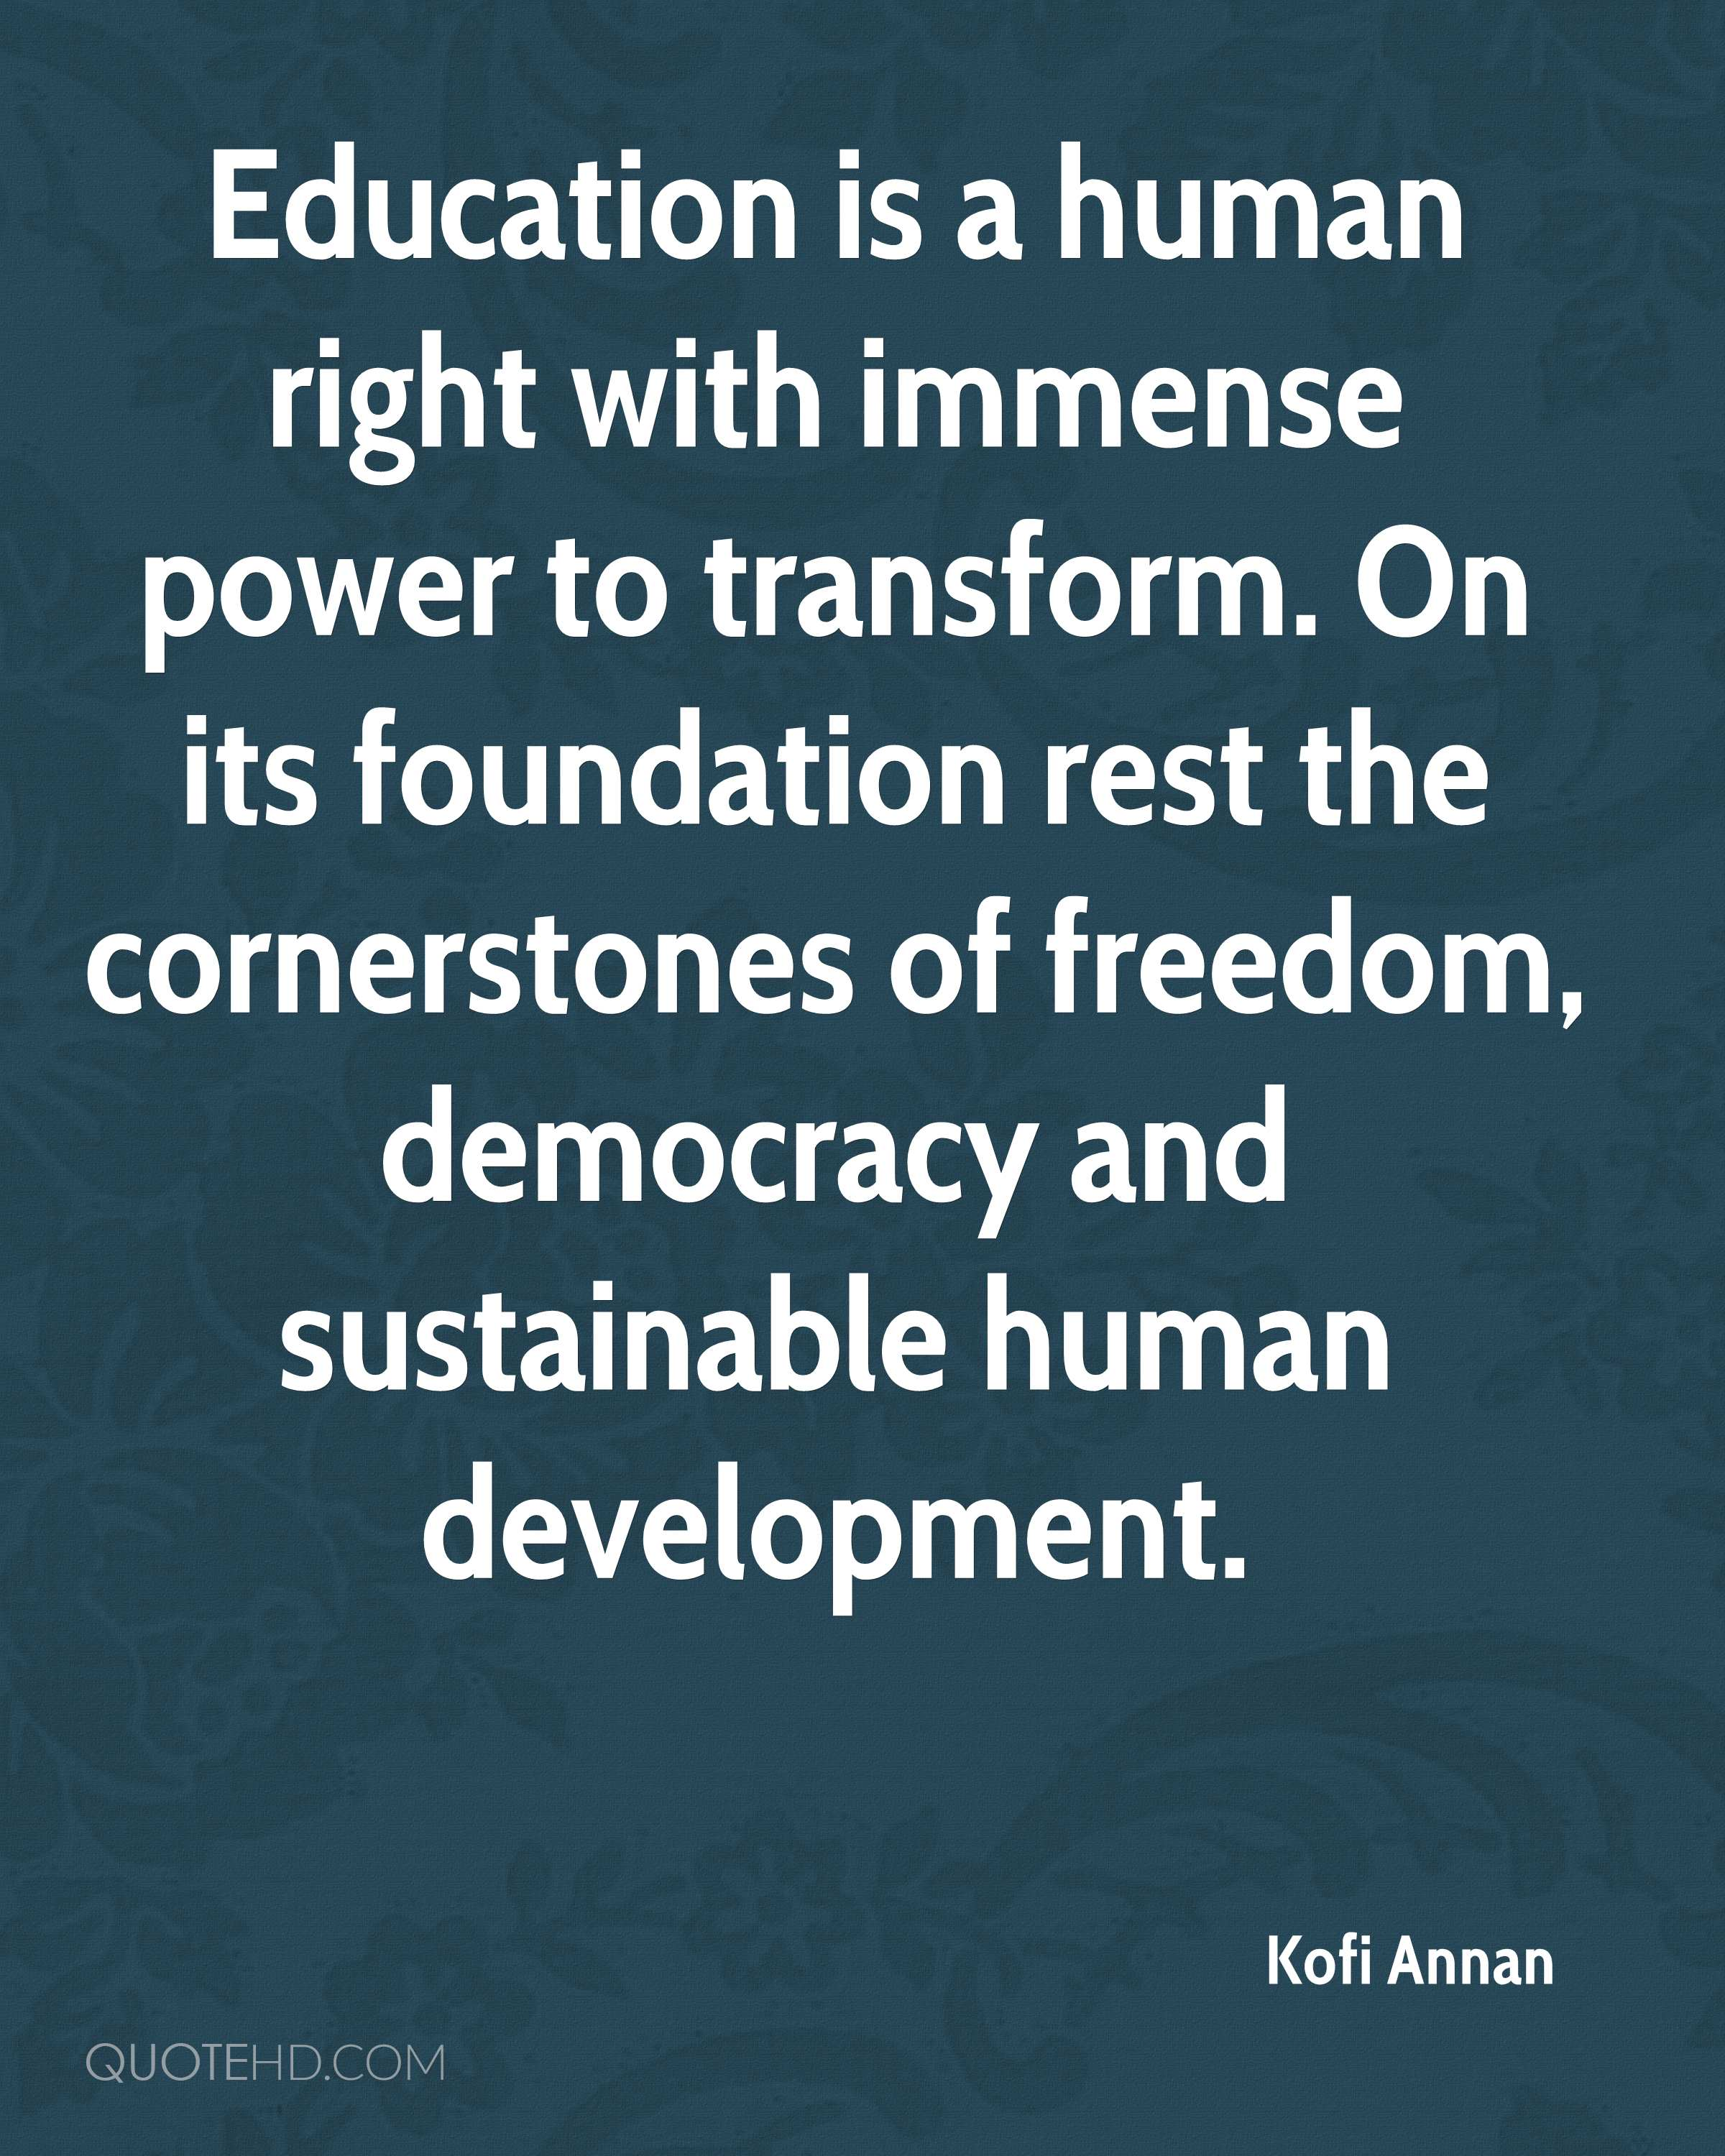 Education is a human right with immense power to transform. On its foundation rest the cornerstones of freedom, democracy and sustainable human development.